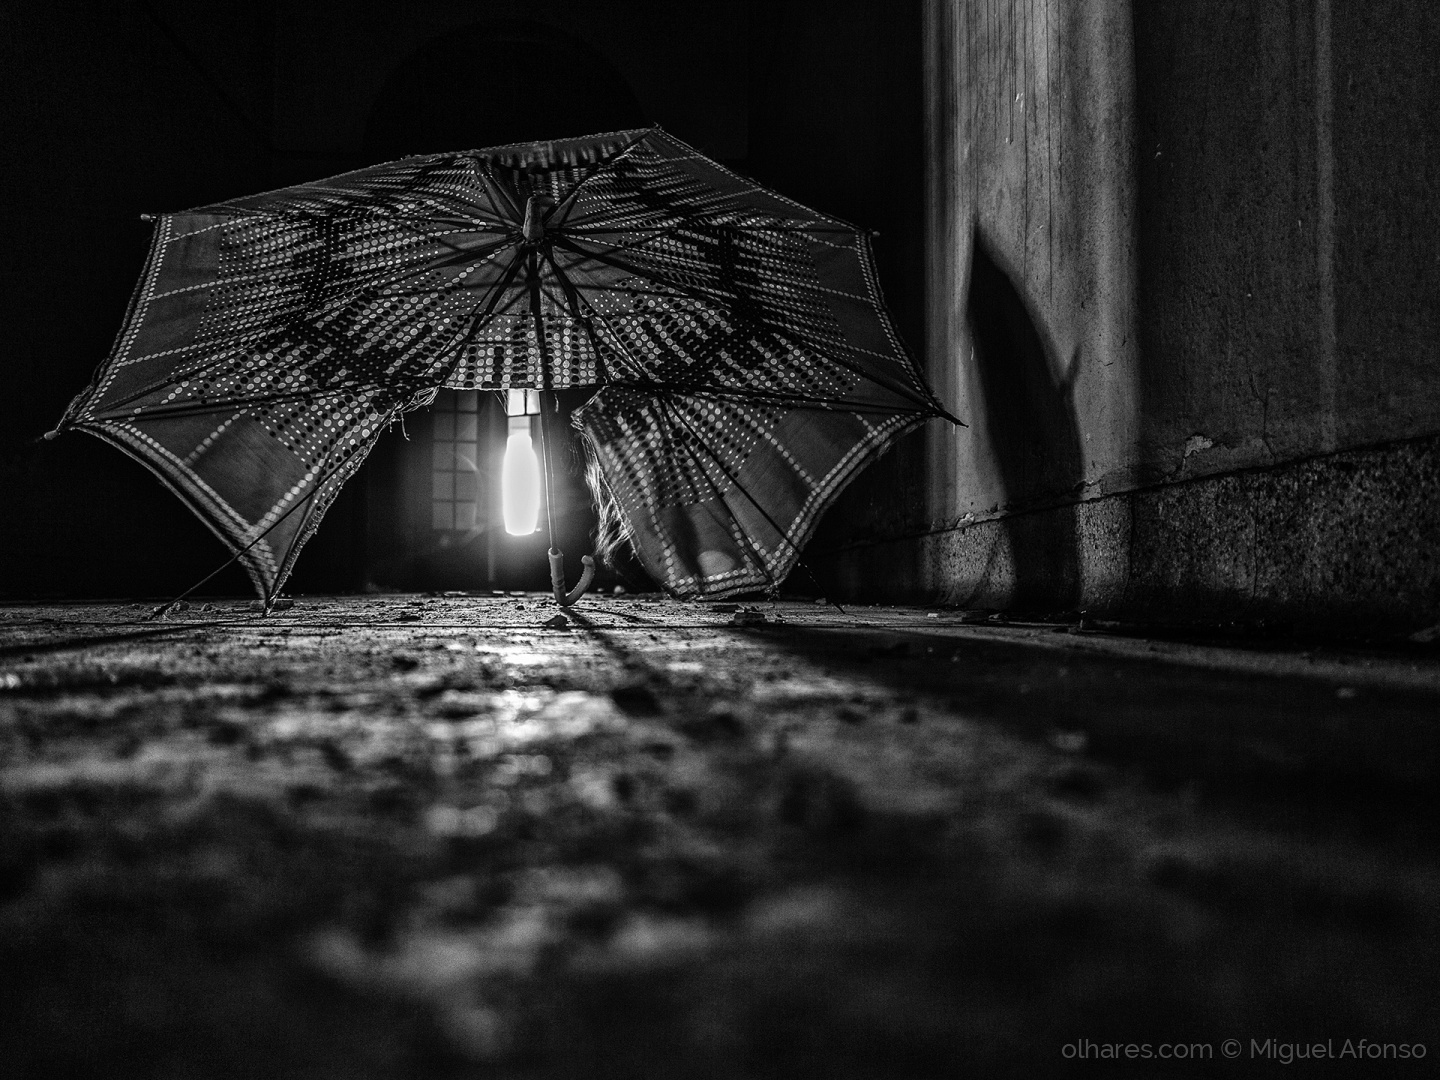 © Miguel Afonso - lost umbrella